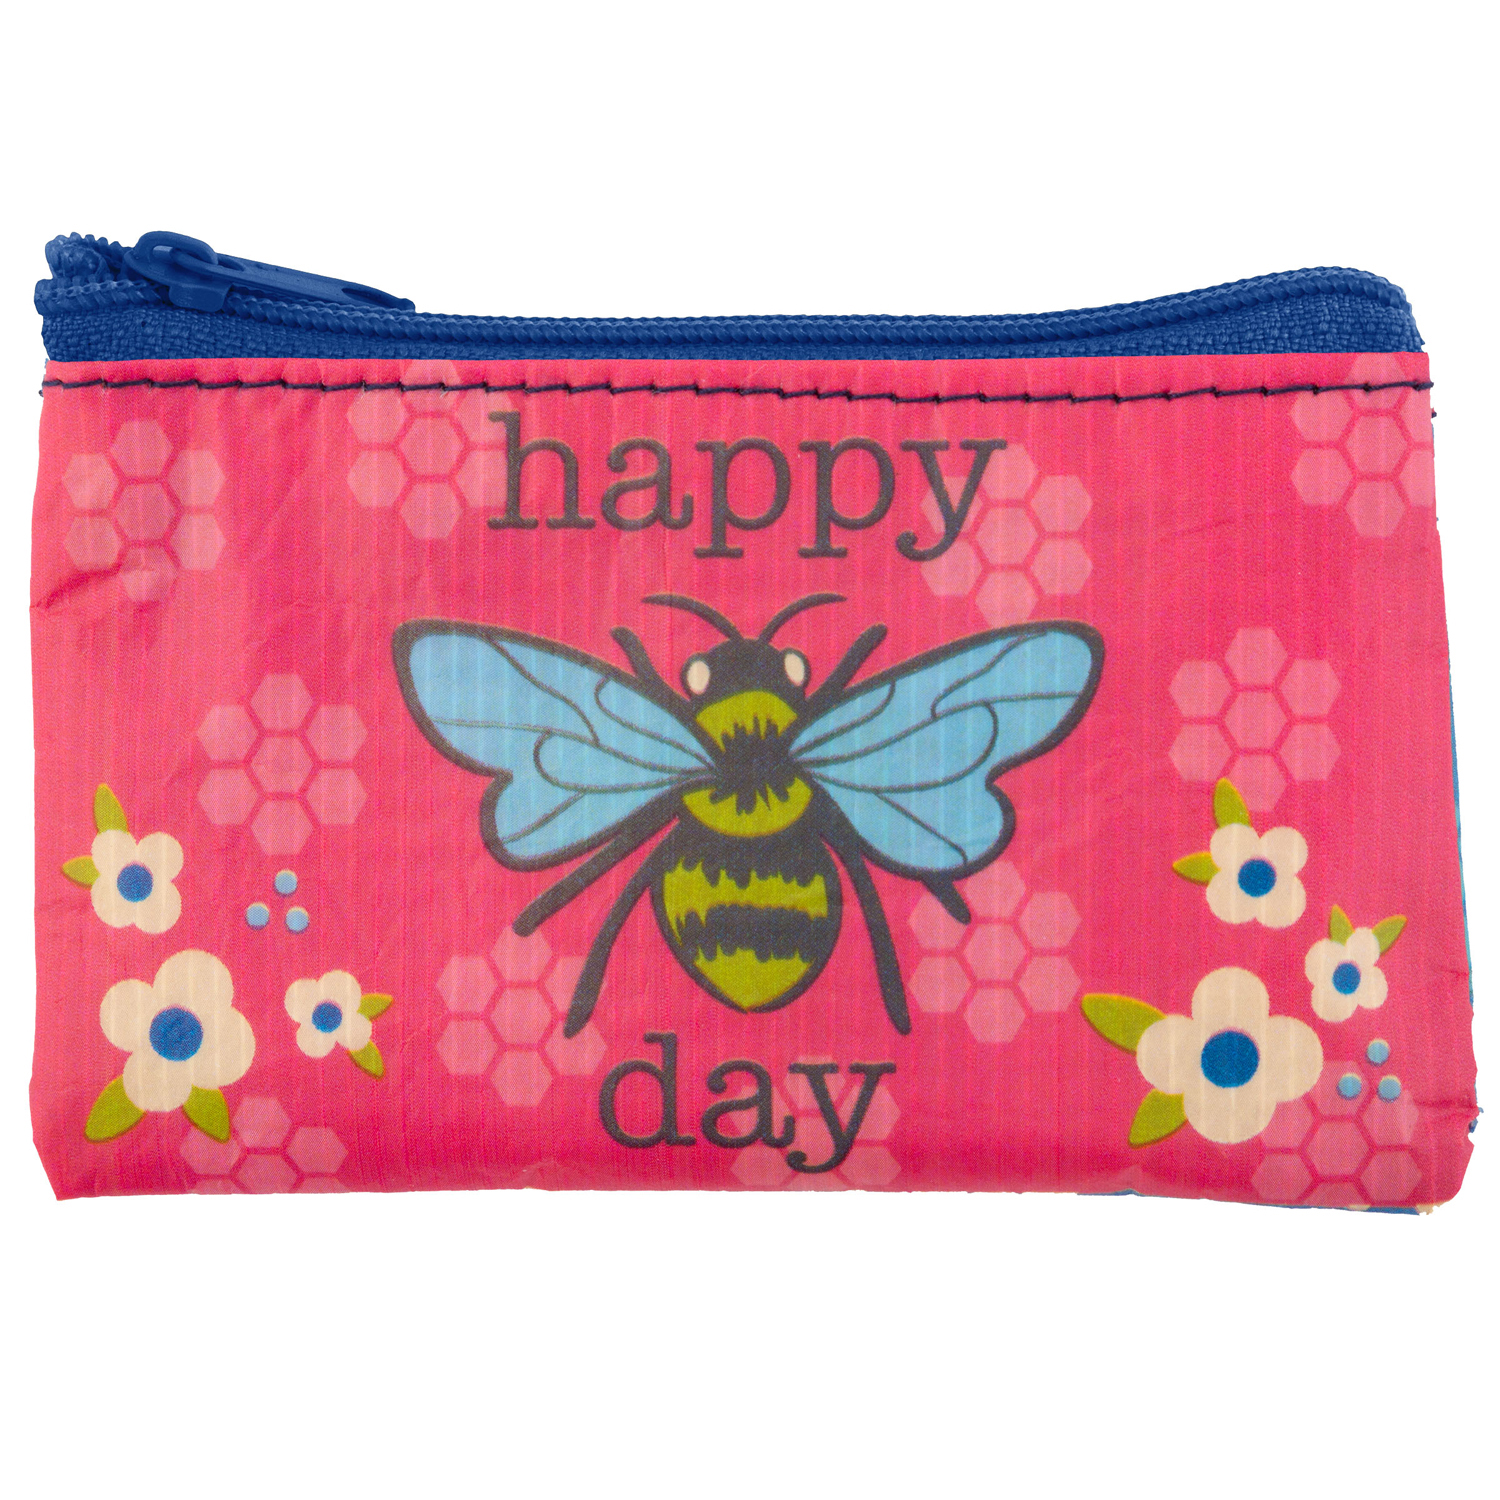 Bee Happy Day Coin Purse